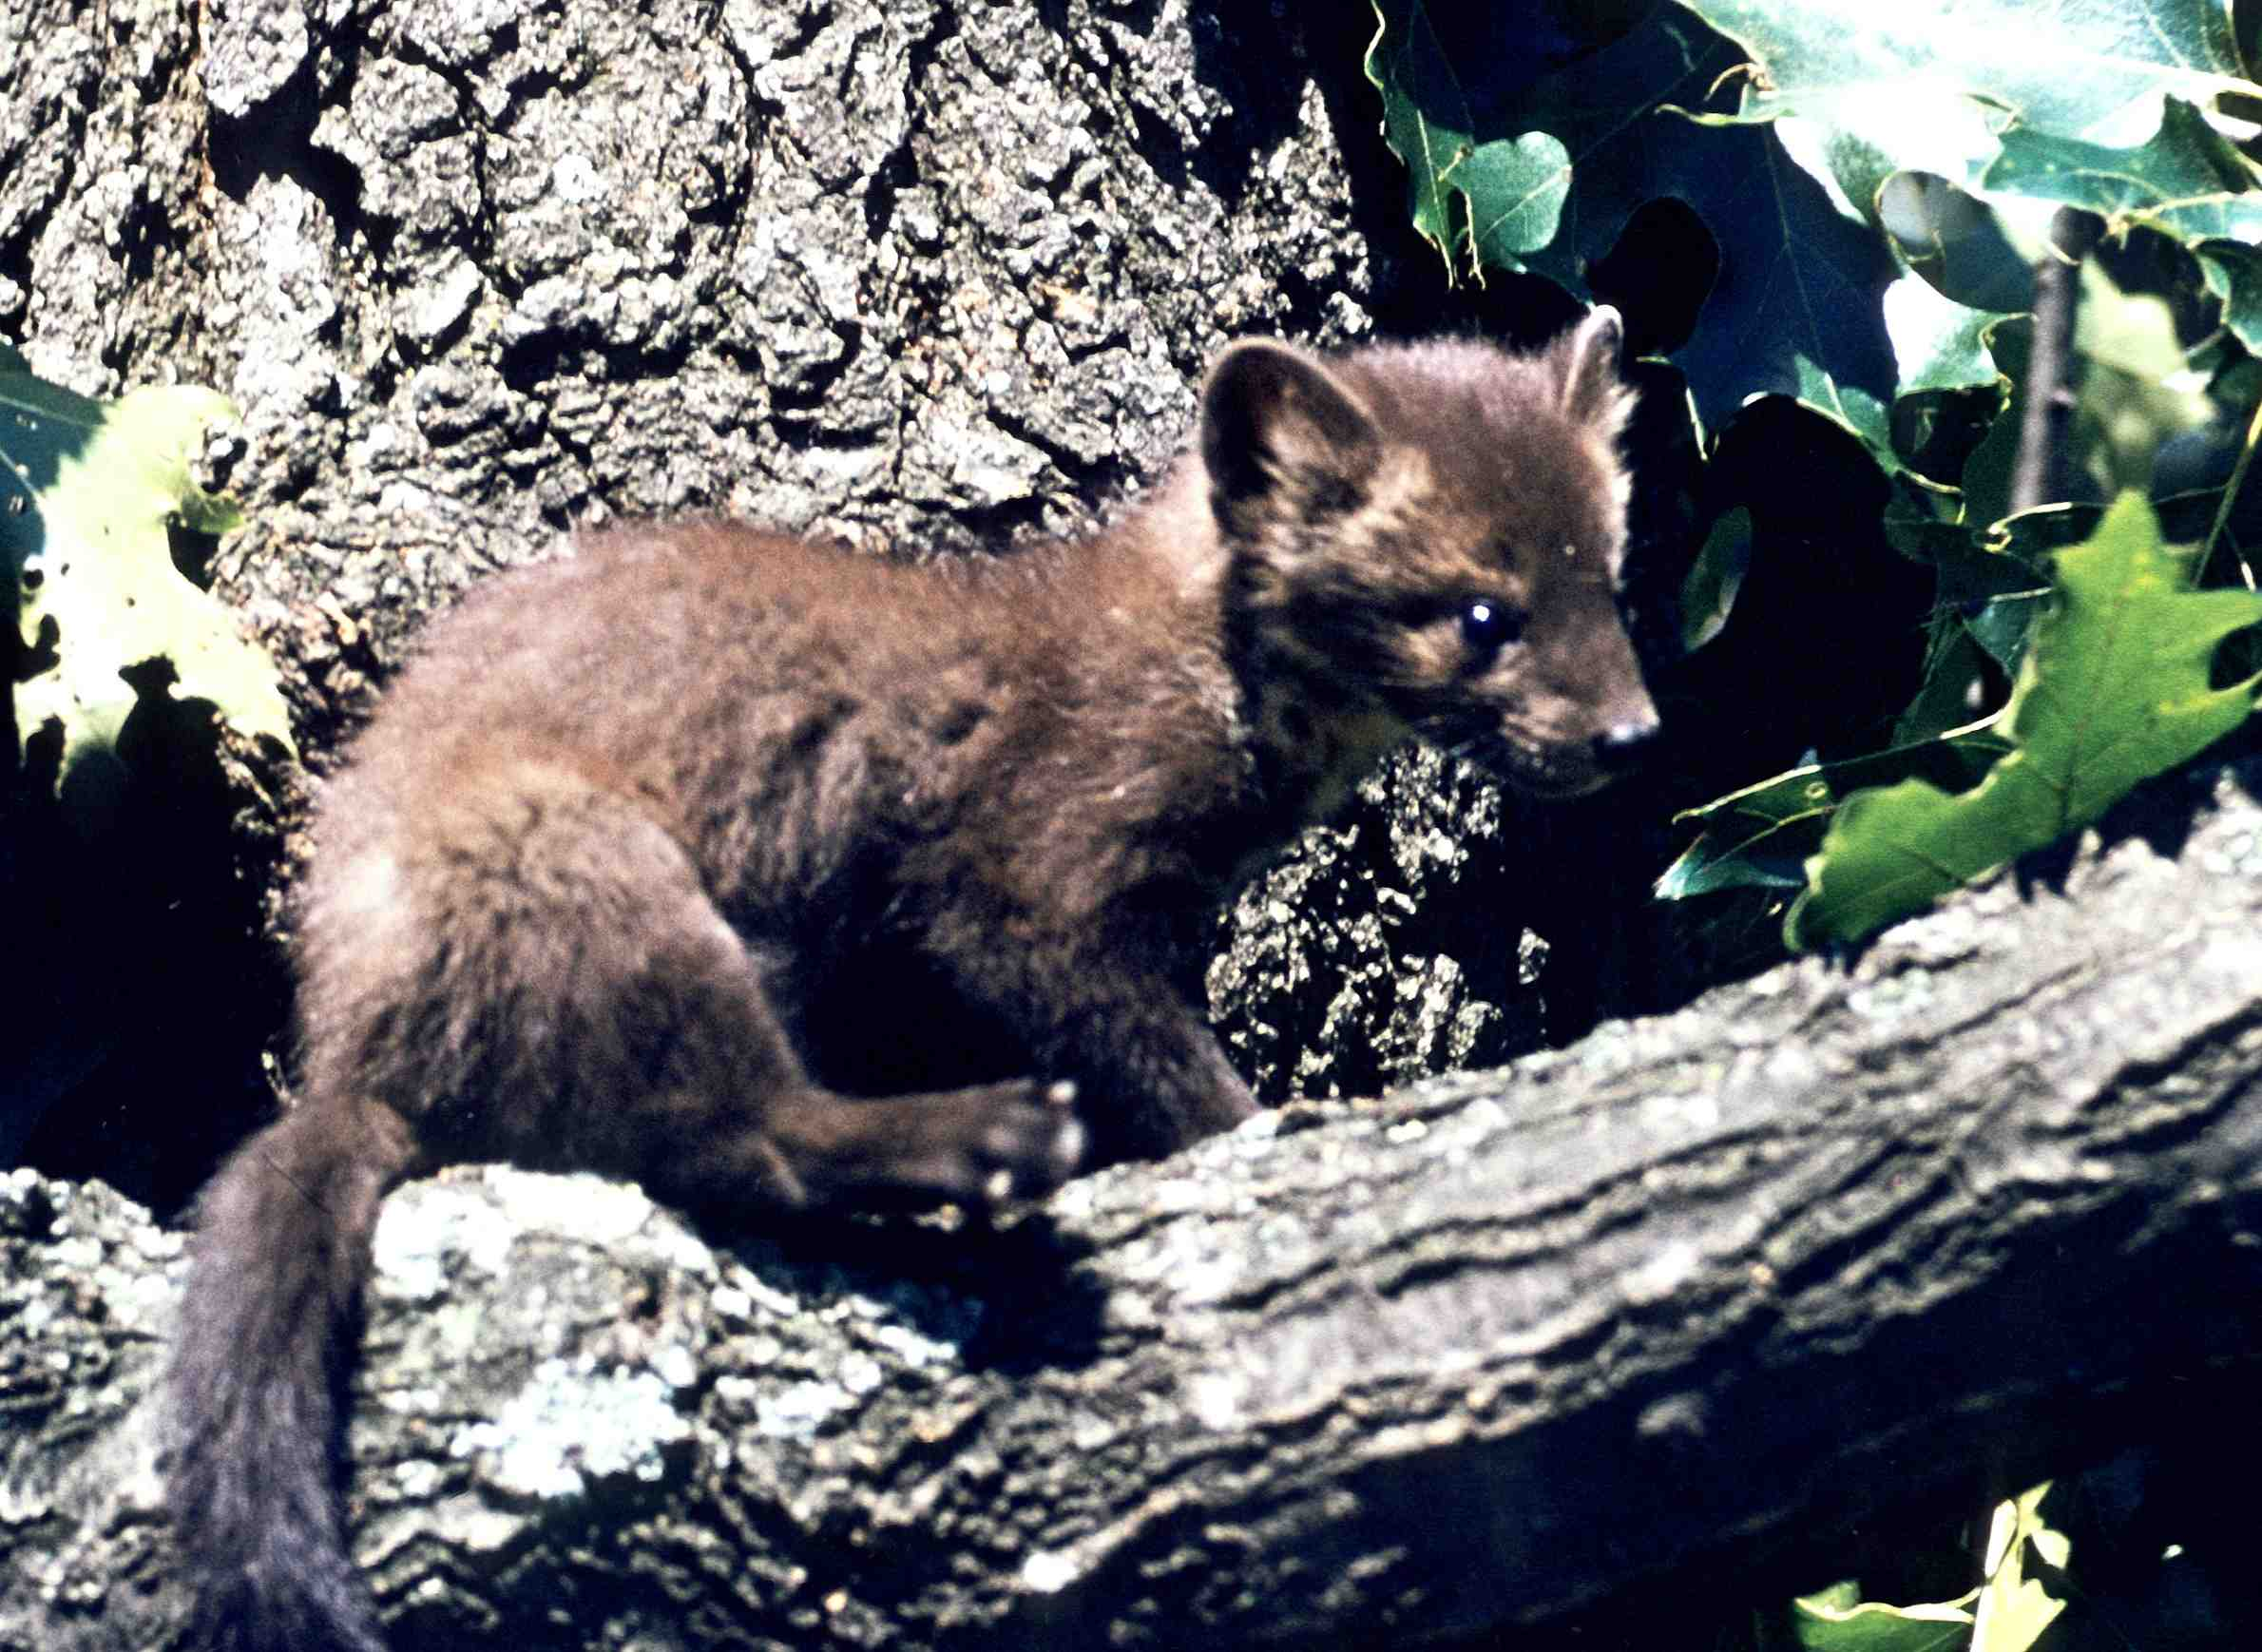 greatlakesecho-animals-endangered-augmentation-americanmarten.jpg